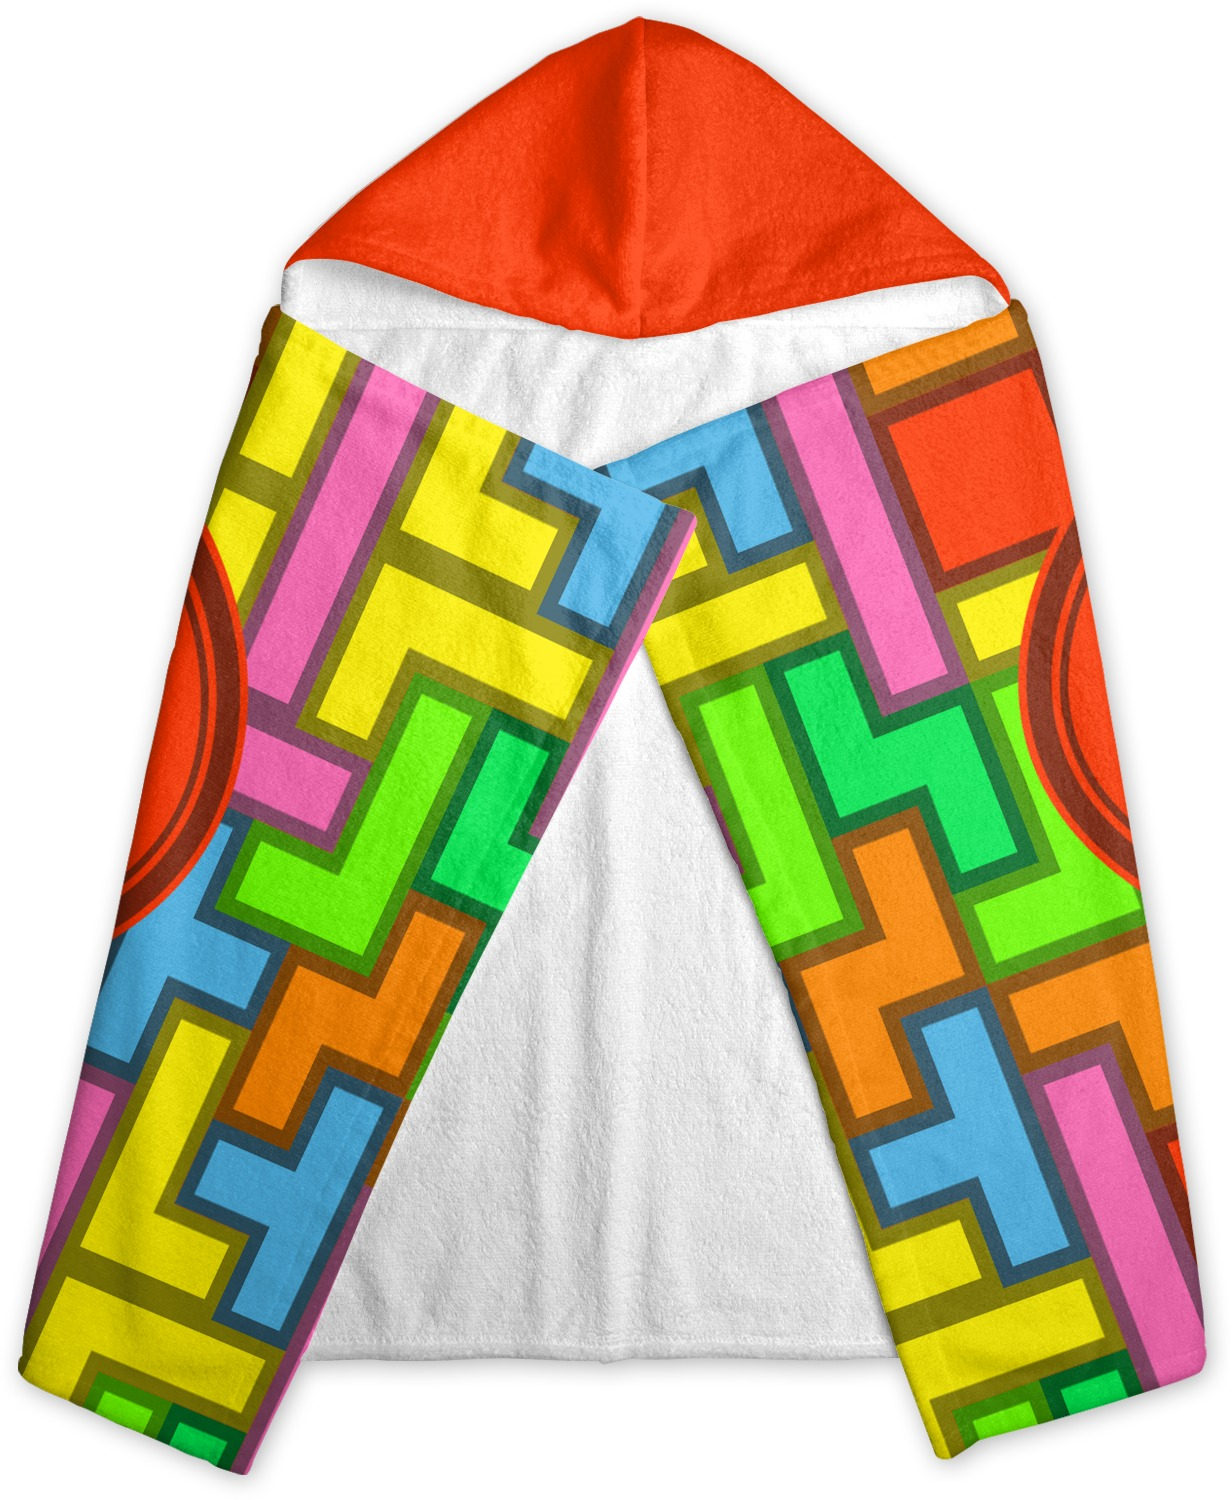 Tetris Print Hooded Towel Personalized Youcustomizeit